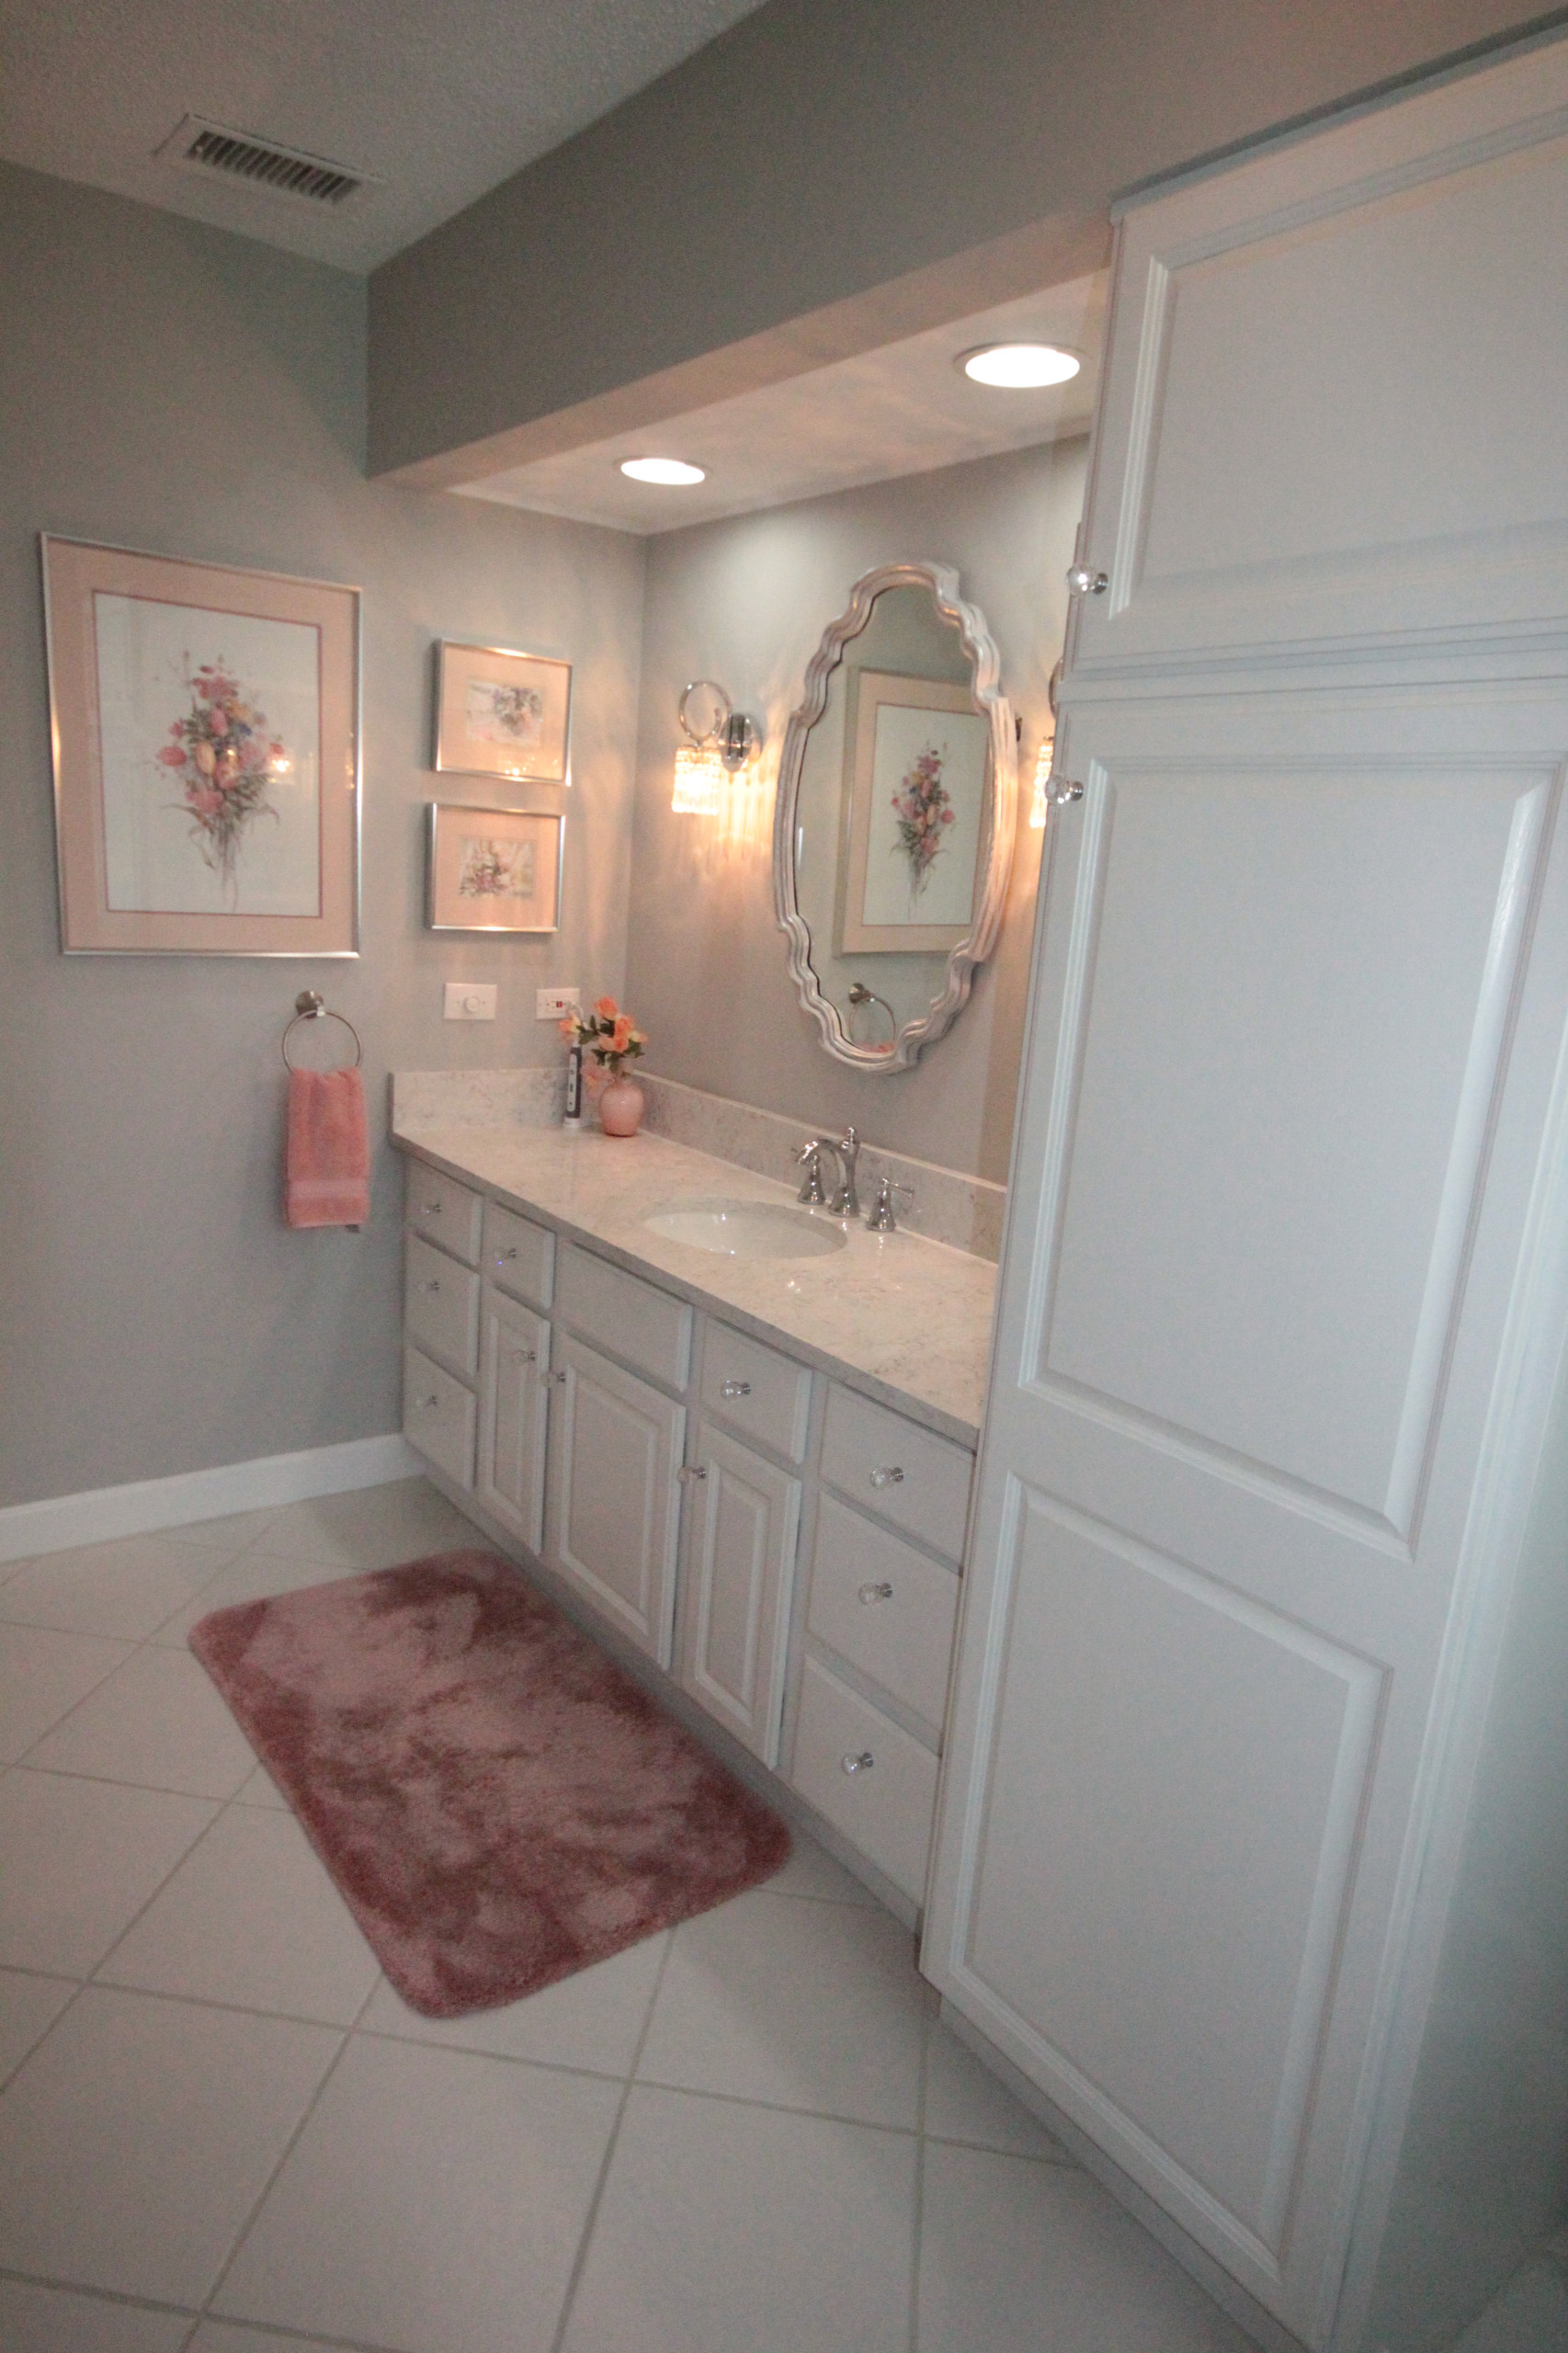 Soft gray color used on the walls